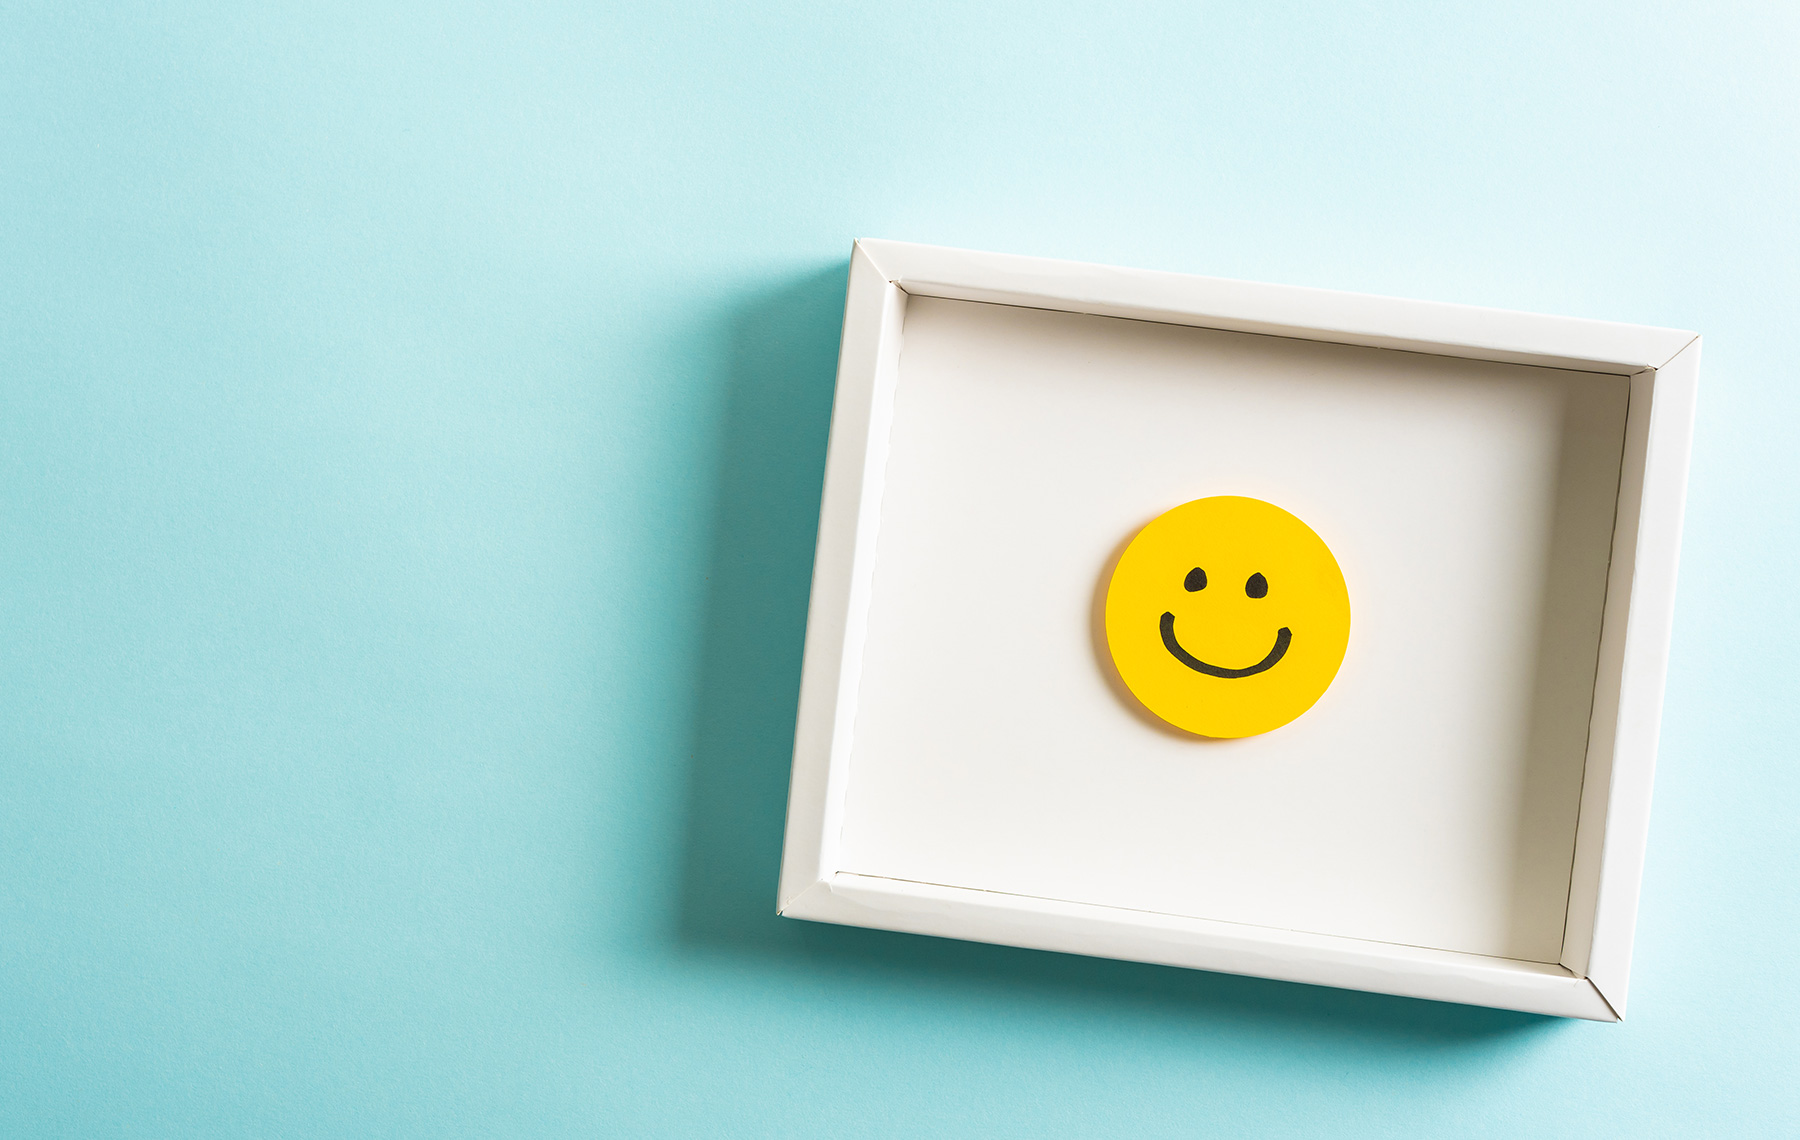 Happy yellow smiling emoticon face frame hanging on blue background with empty space for text fomo blog